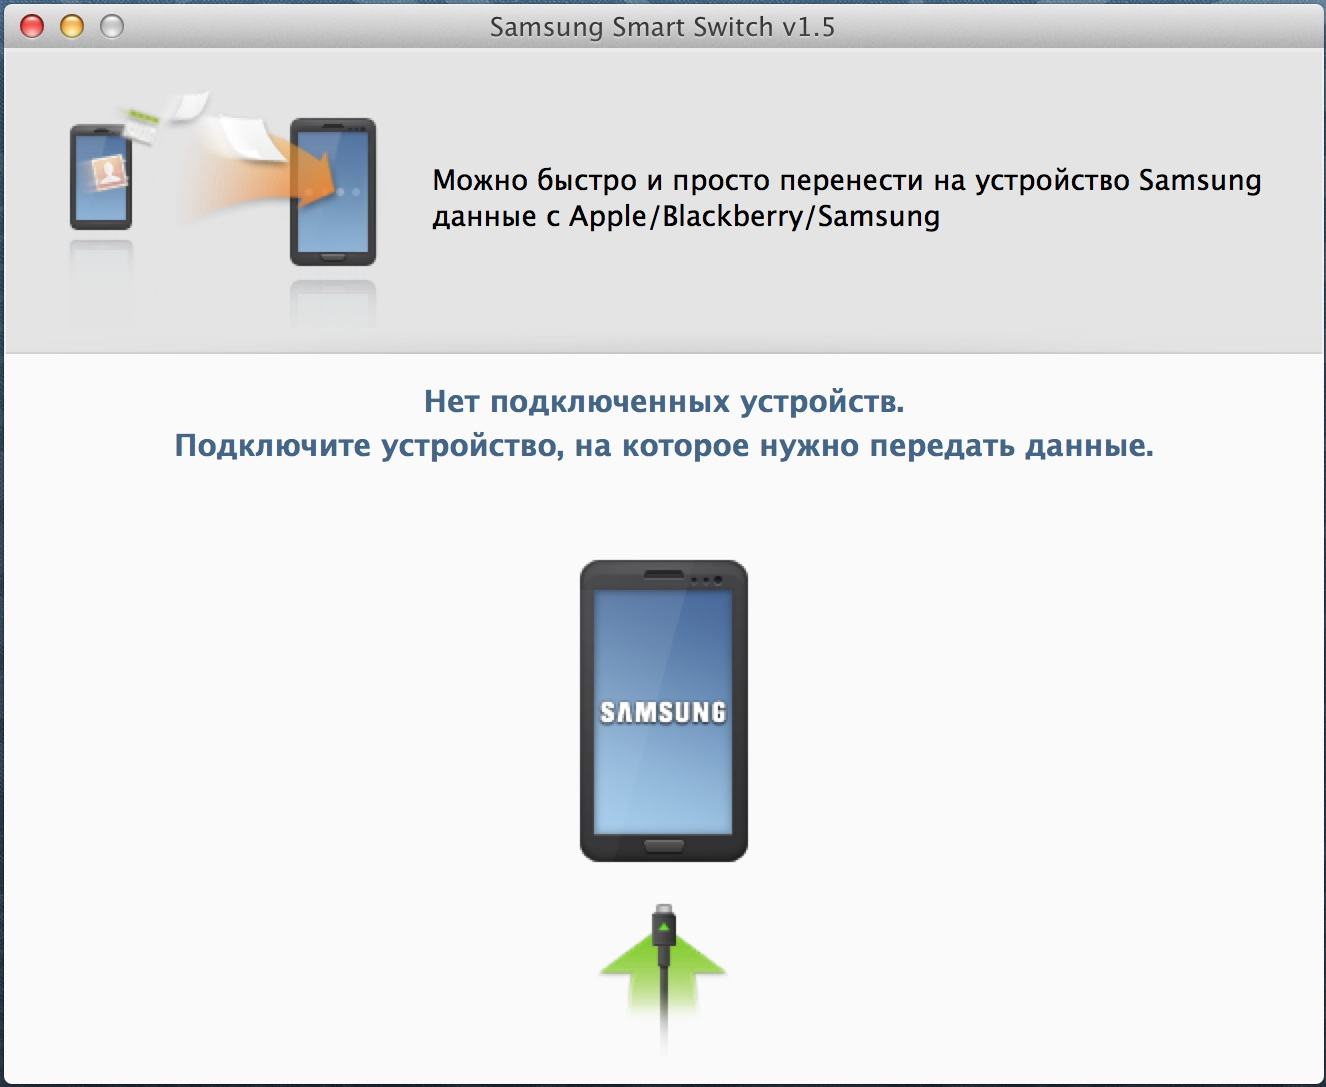 Настройка Samsung Smart Switch